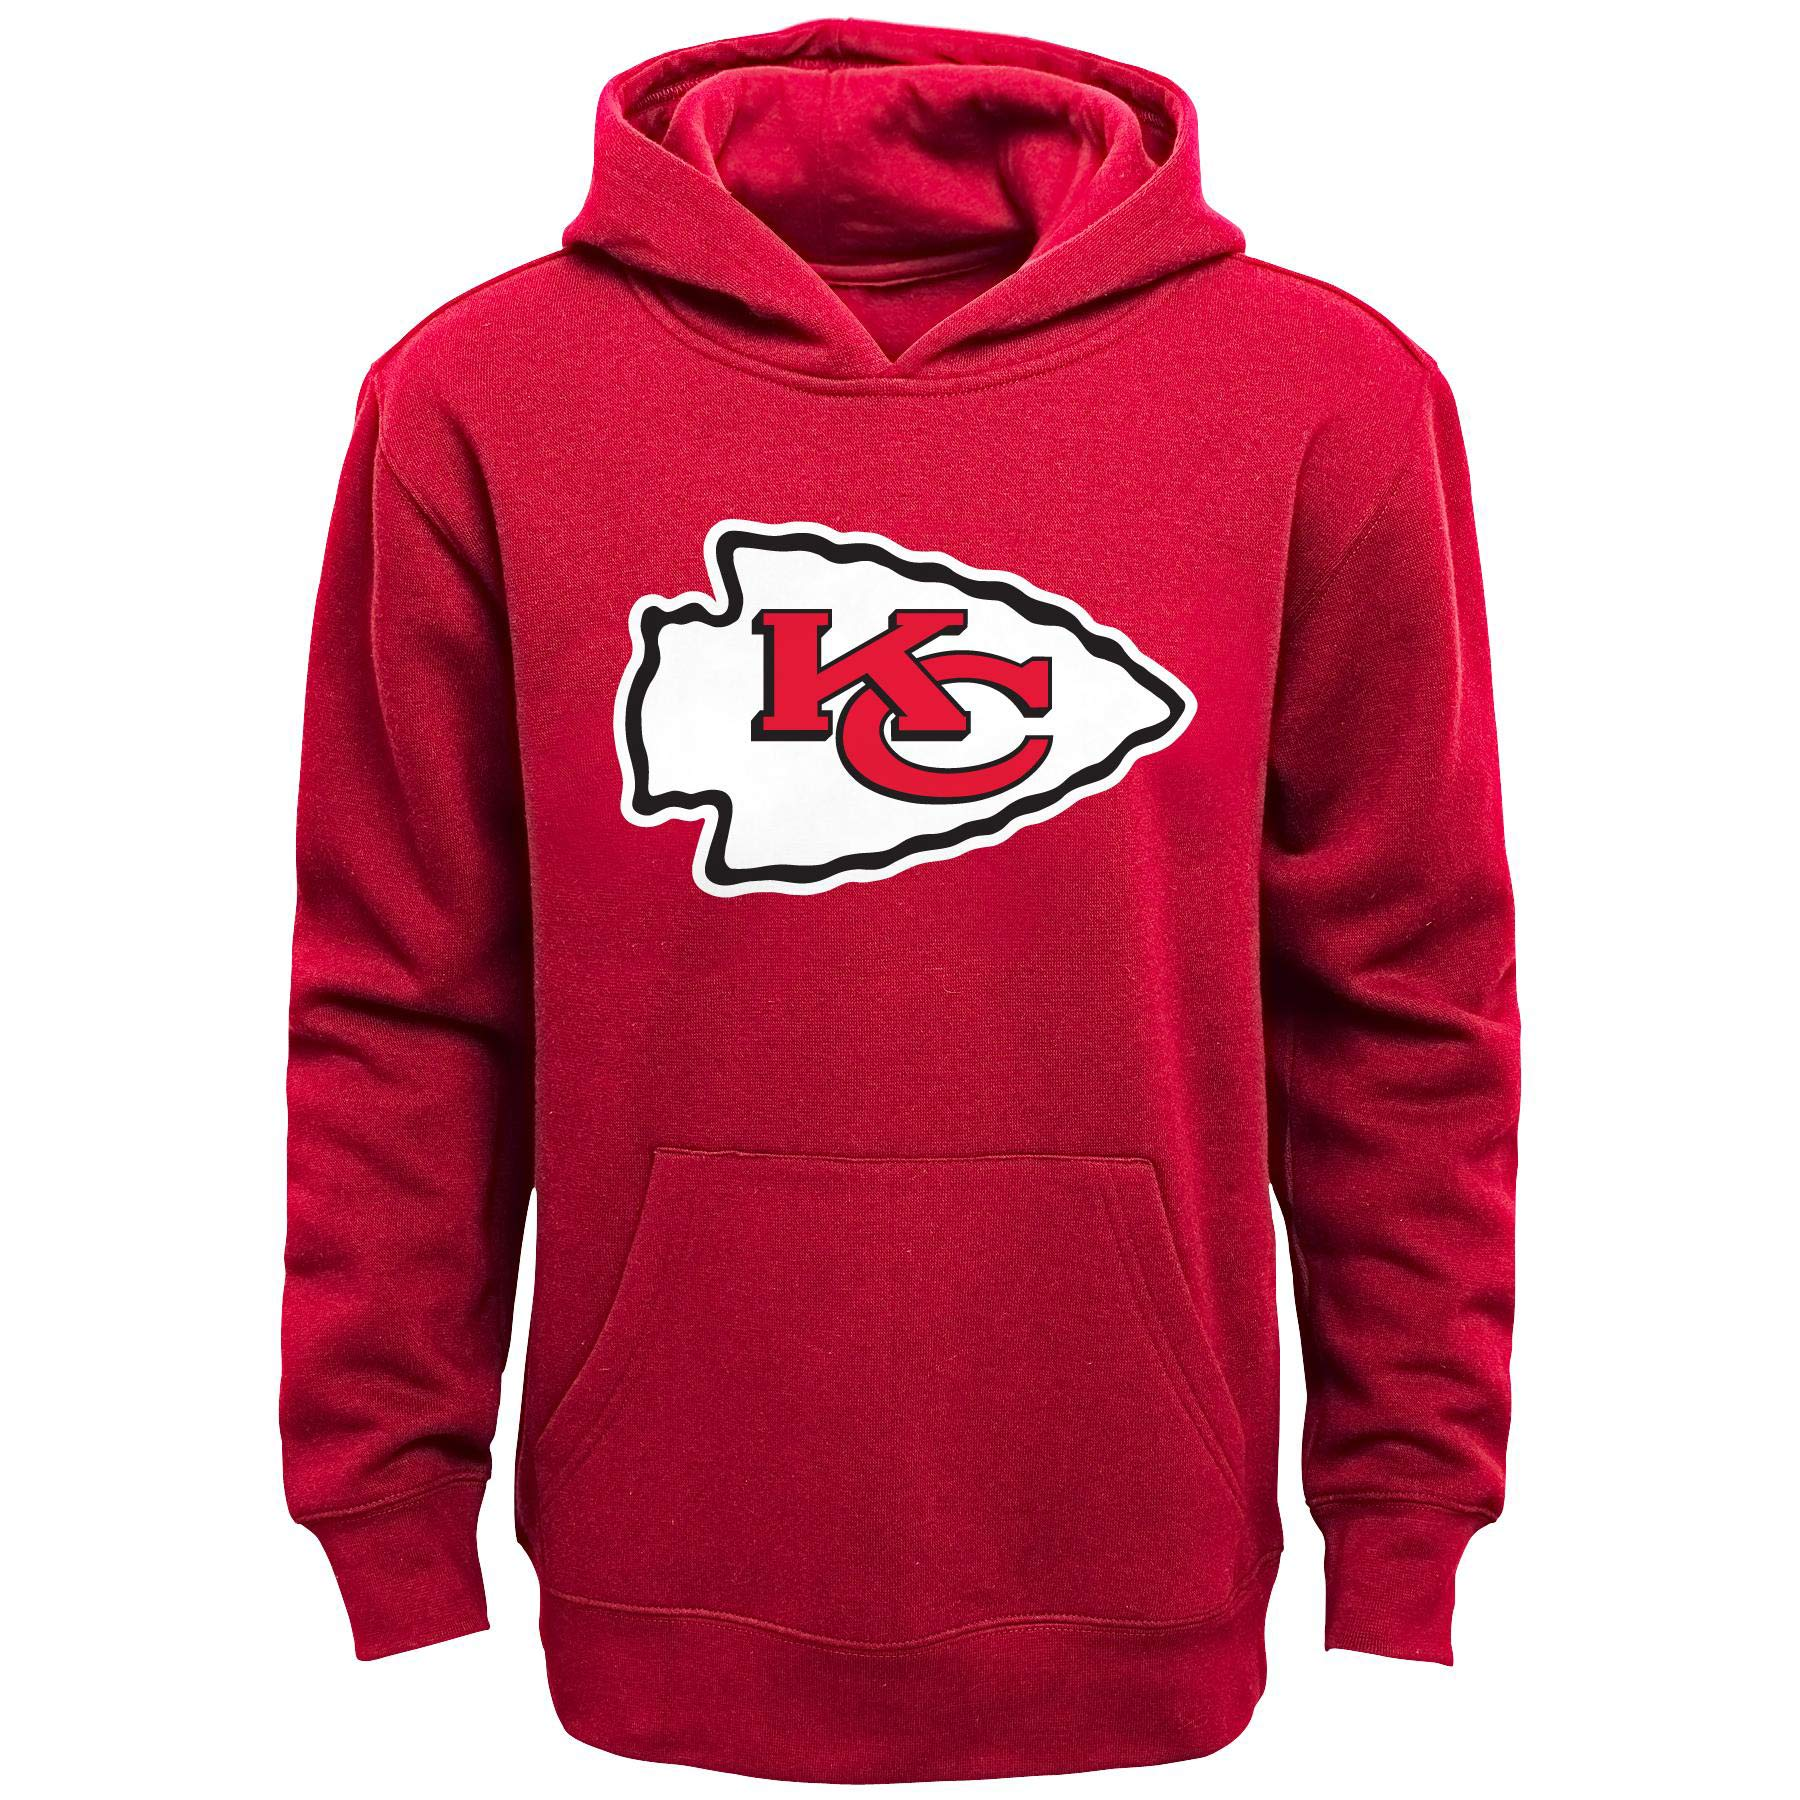 Kansas City Chiefs Youth Team Logo Pullover Hoodie - Red